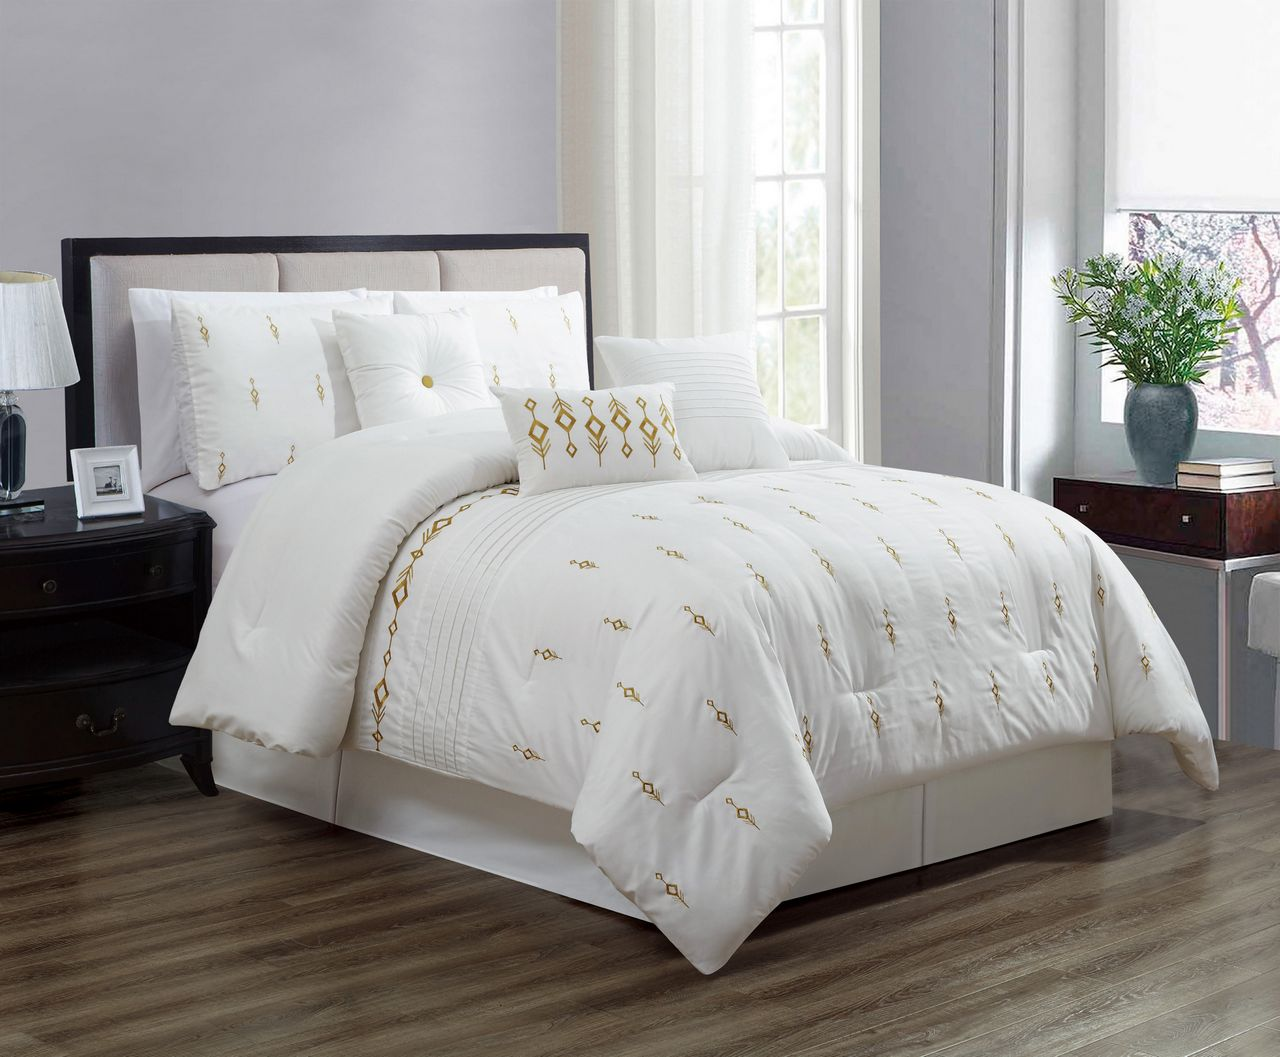 shabby comforters pinterest boys blog cabinet set walmart preston vintage com tuscan home comforter cab gold bedding de queen fancy bath target decor king and modern sets piece attractive at luxury bed mainstays sheets ideas beyond lis chic only fleur size stores